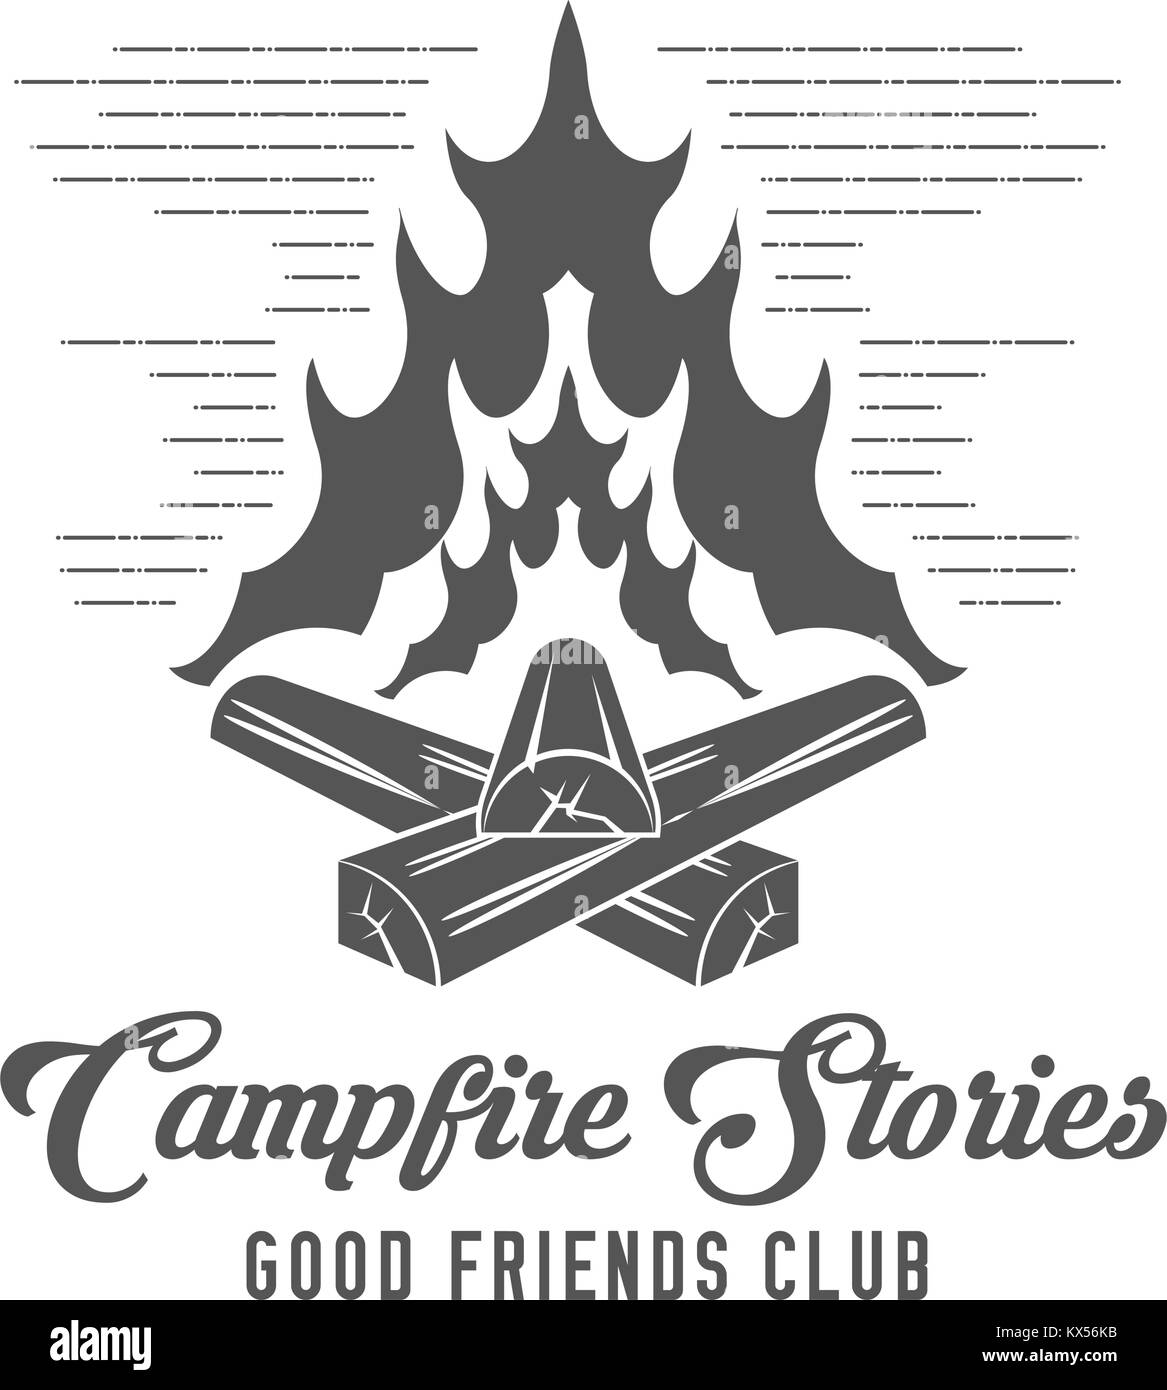 Campfire Stories - Forest Camp - Scout Club Vector Emblem - Stock Vector